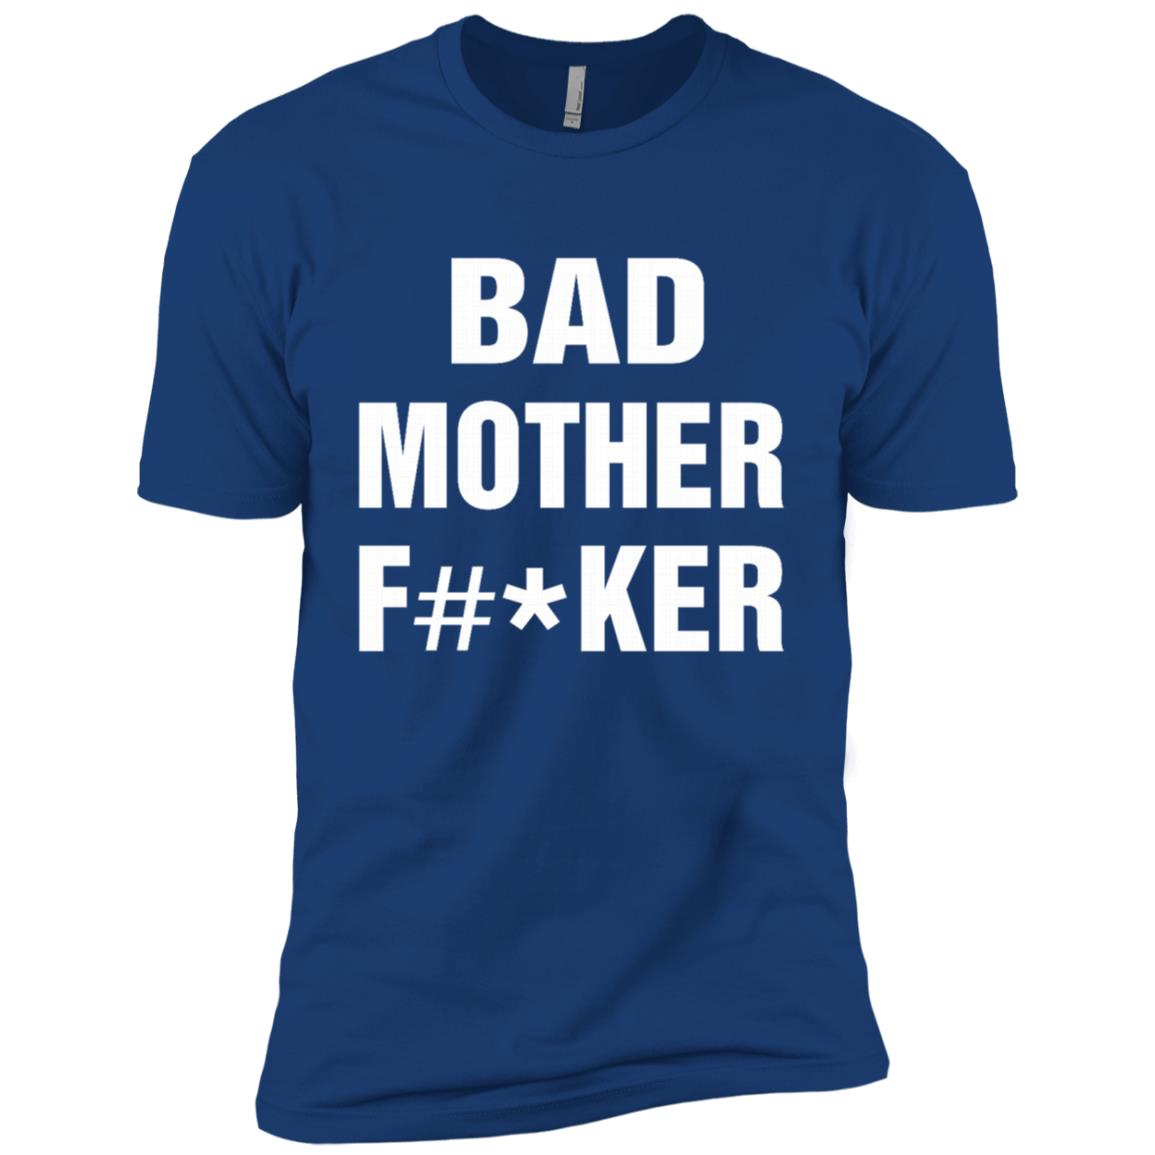 Bad Mother F -ker – Funny Mom gifts – Best gifts Mommy Men Short Sleeve T-Shirt